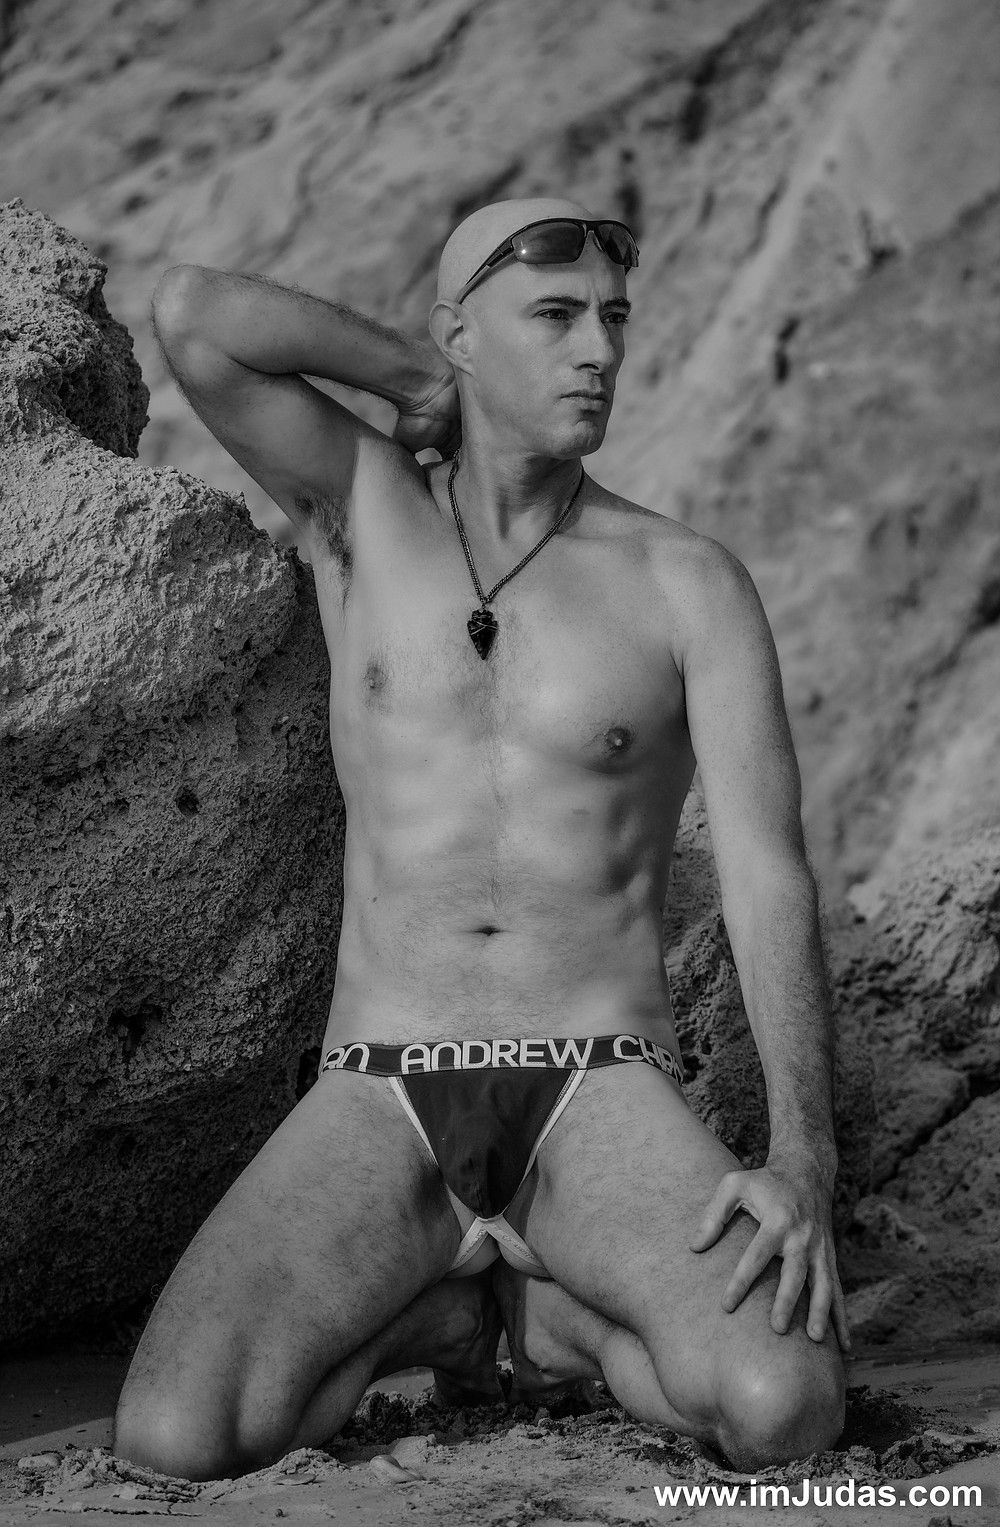 Wearing a jock at the beach